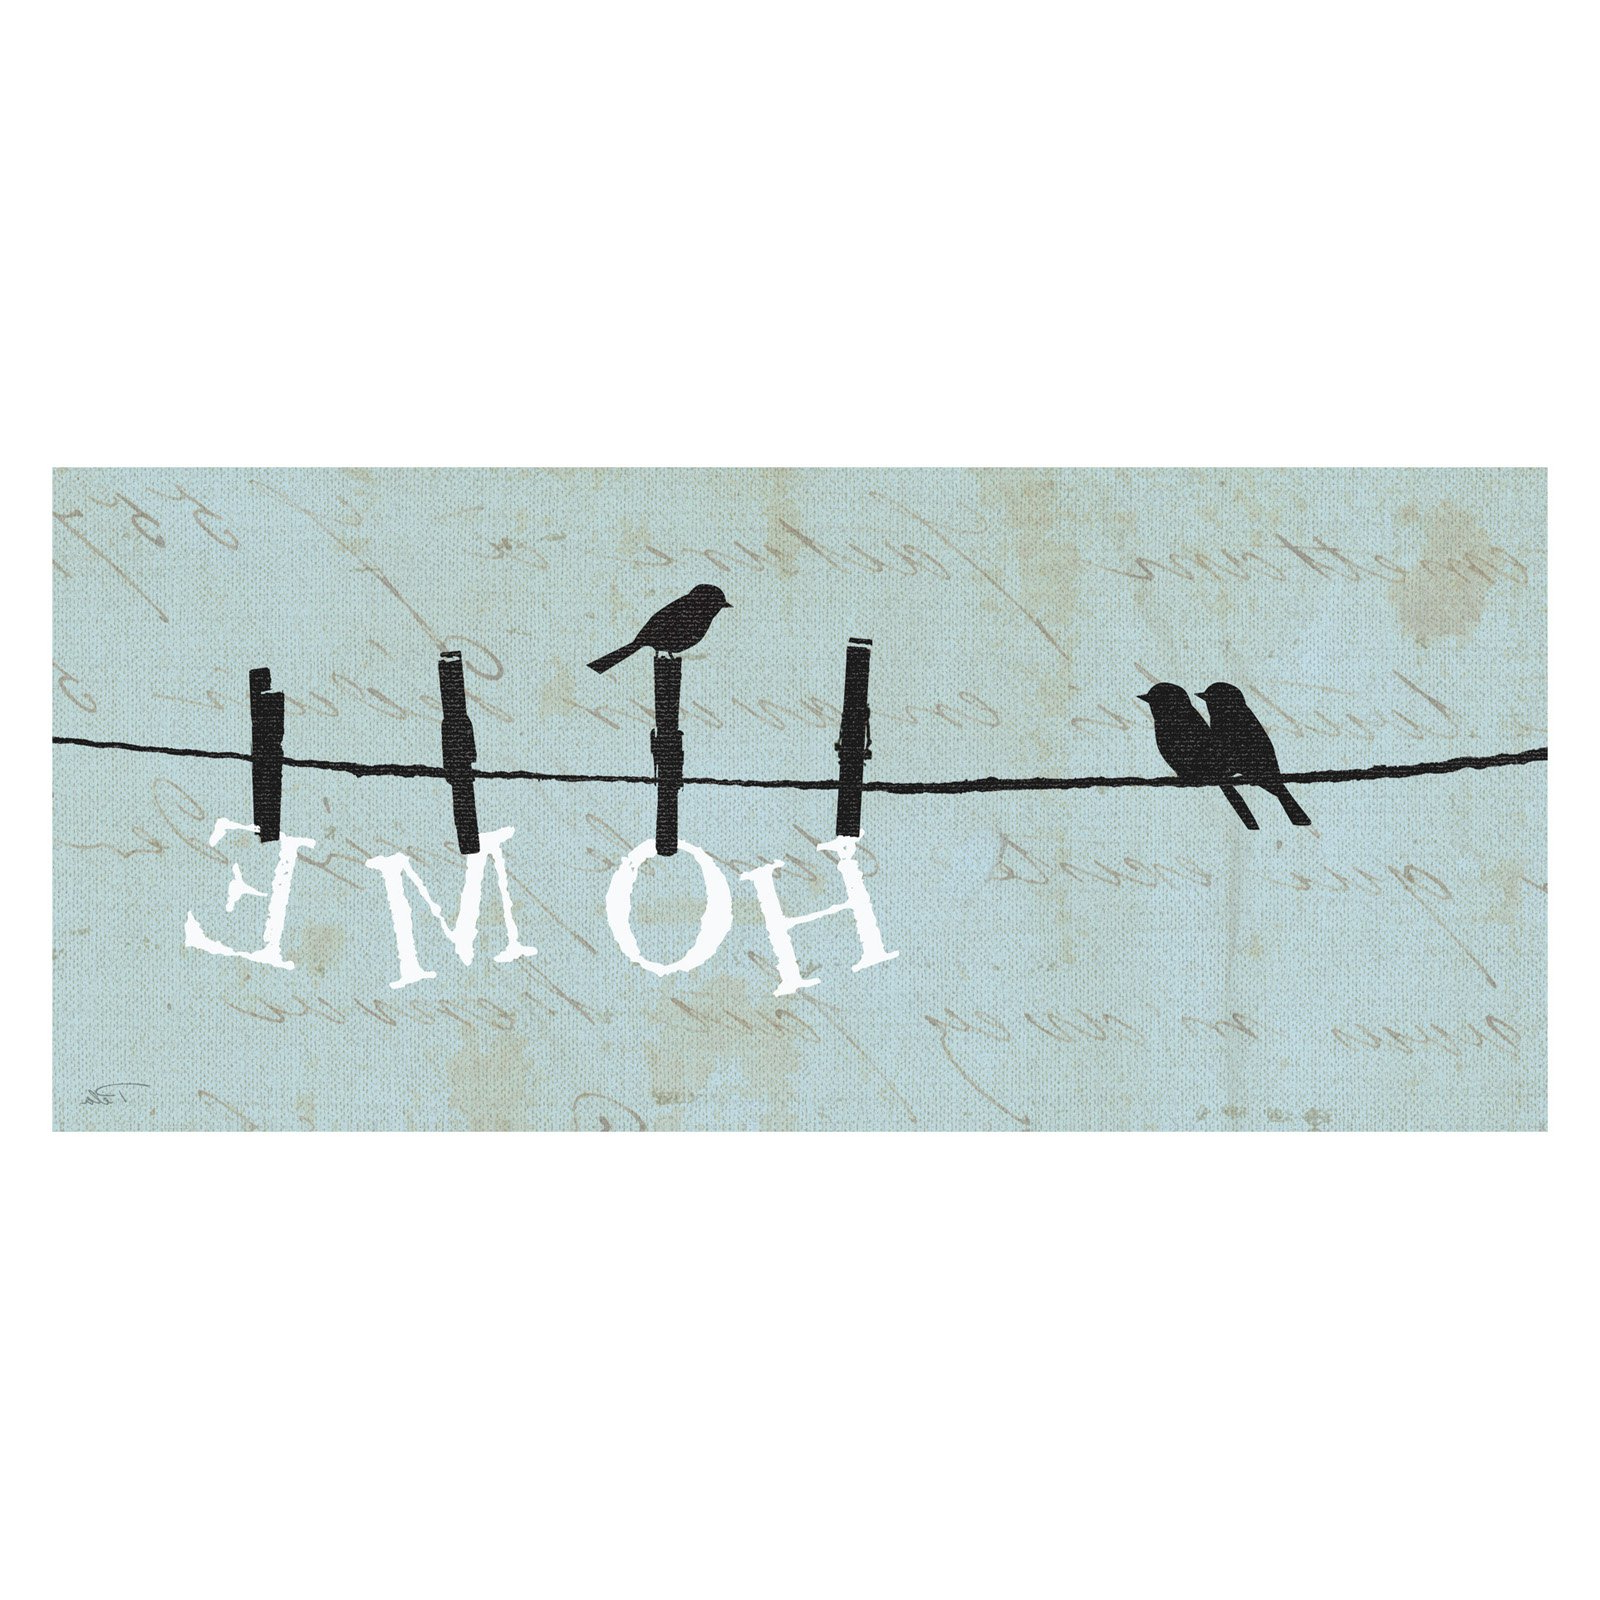 Newest Birds On A Wire Wall Art – Pmpresssecretariat Inside Birds On A Wire Wall Decor (Gallery 13 of 20)